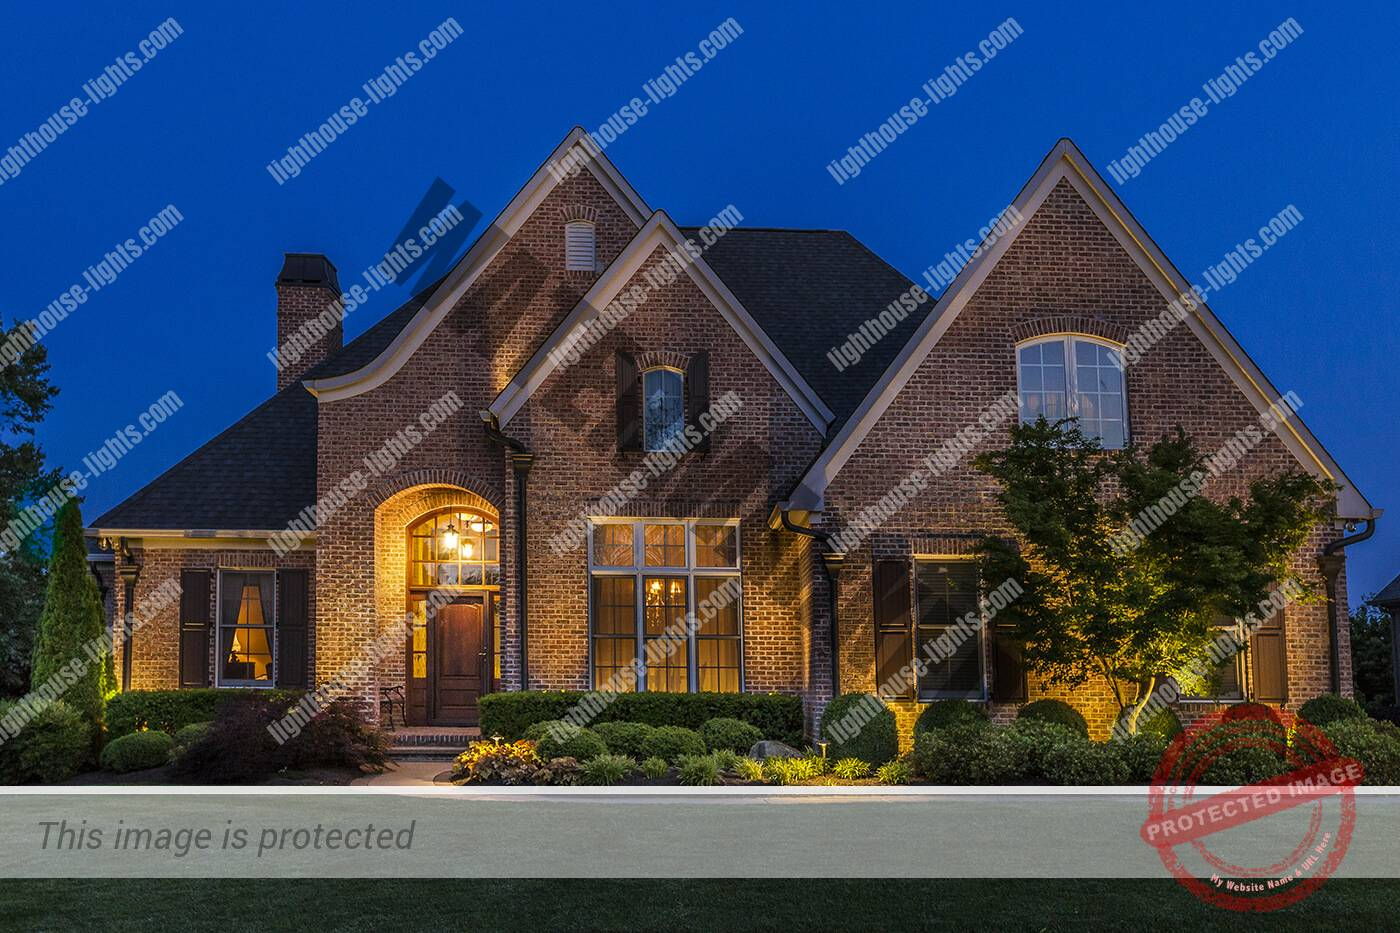 Architectural Lighting in Jefferson Park Subdivision Knoxville